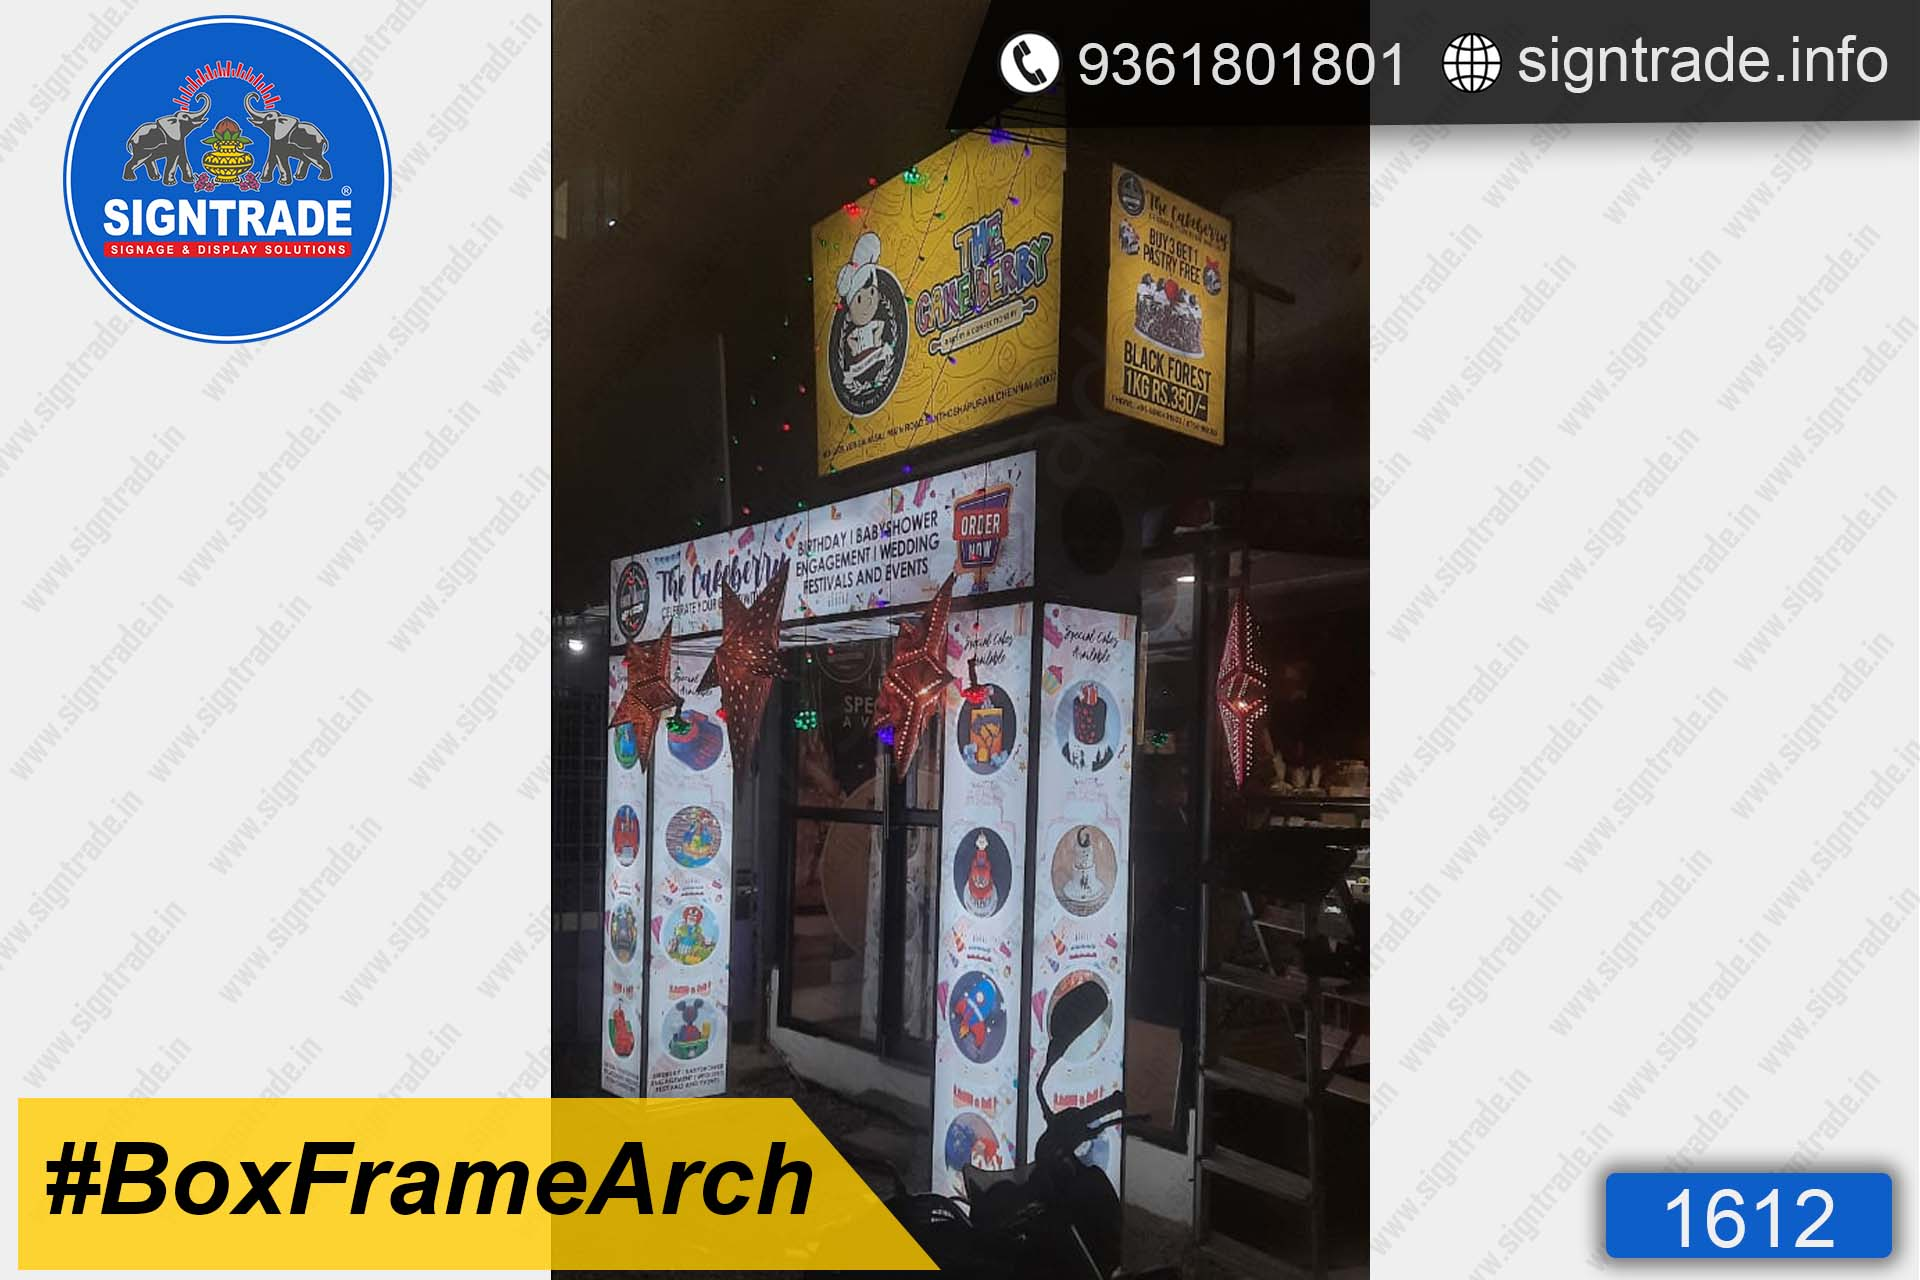 Bakery Shop - SIGNTRADE - Promotional Backlit Box Frame Arch Manufacturers in Chennai